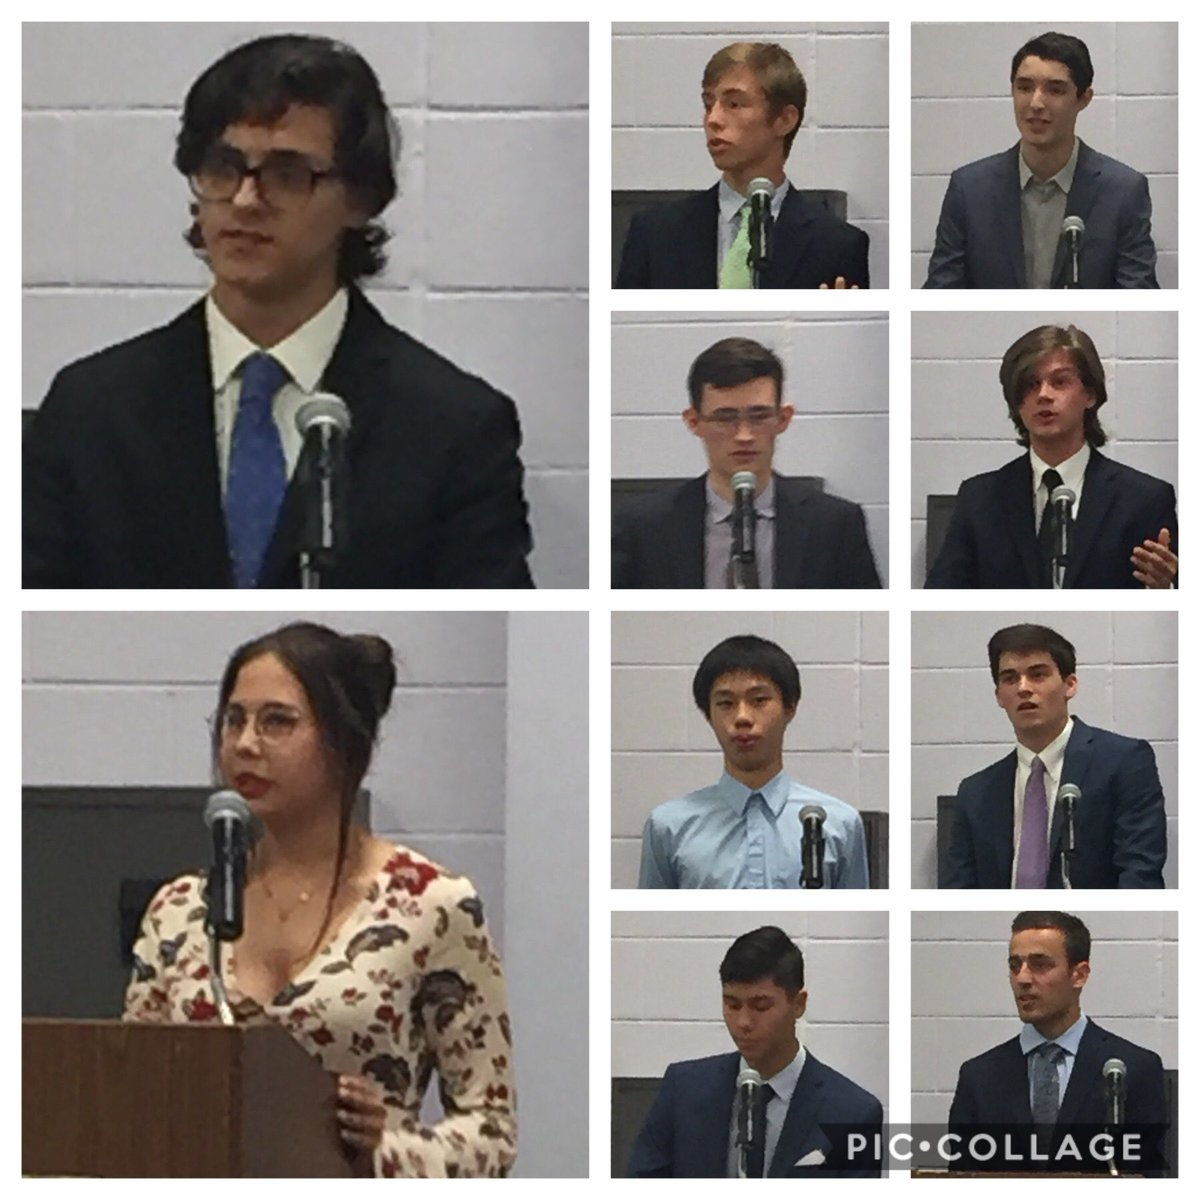 These students are thoughtful, dedicated, &amp; quirky. They will take the Engineering world by storm!  <a target='_blank' href='http://twitter.com/APSCTAE'>@APSCTAE</a> <a target='_blank' href='http://twitter.com/GeneralsPride'>@GeneralsPride</a> <a target='_blank' href='http://twitter.com/WLHSPrincipal'>@WLHSPrincipal</a> <a target='_blank' href='https://t.co/DAynsOmtSX'>https://t.co/DAynsOmtSX</a>